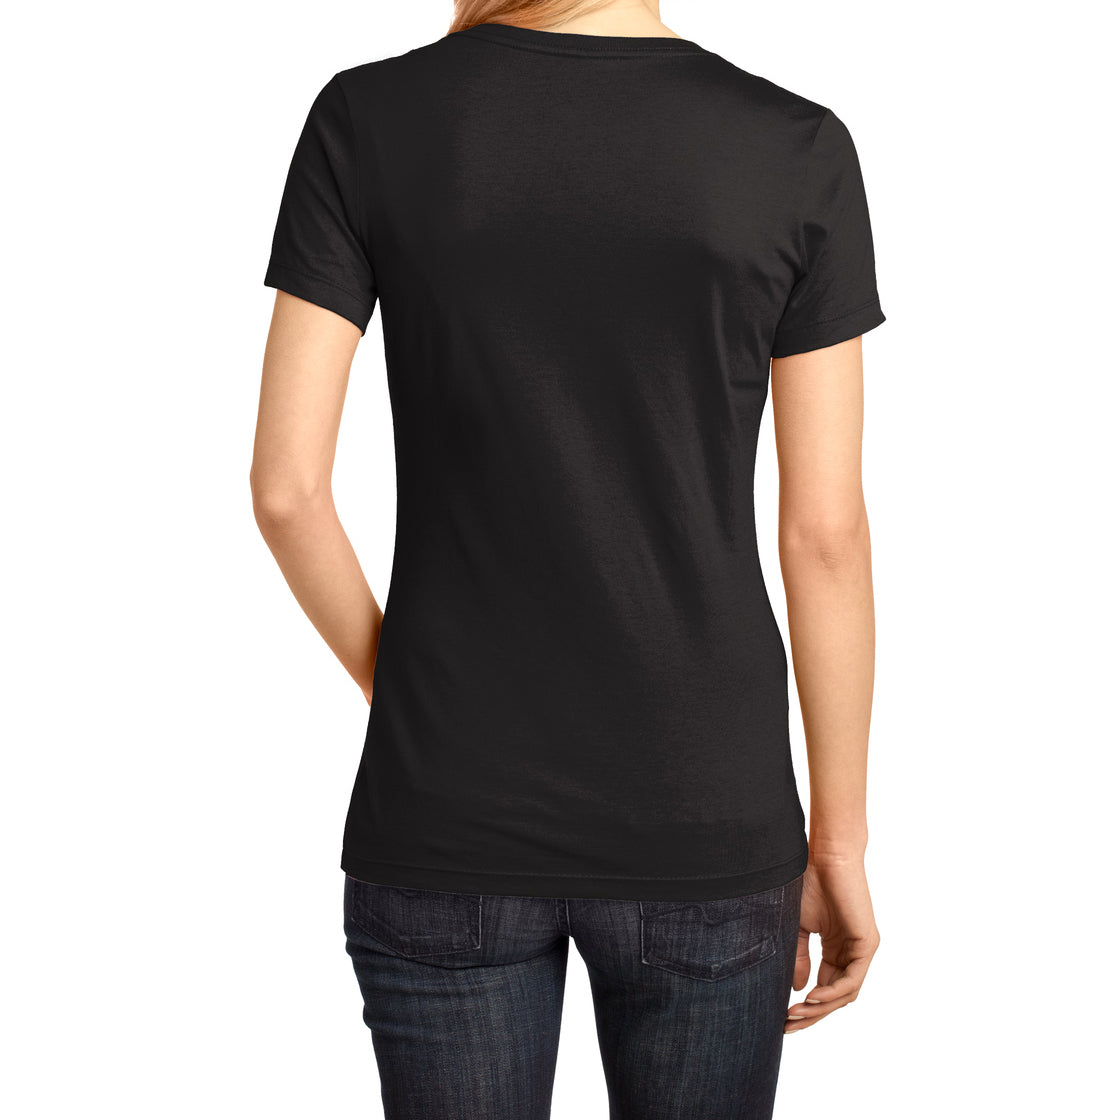 Ladies Perfect Weight V-Neck Tee - Jet Black - Back